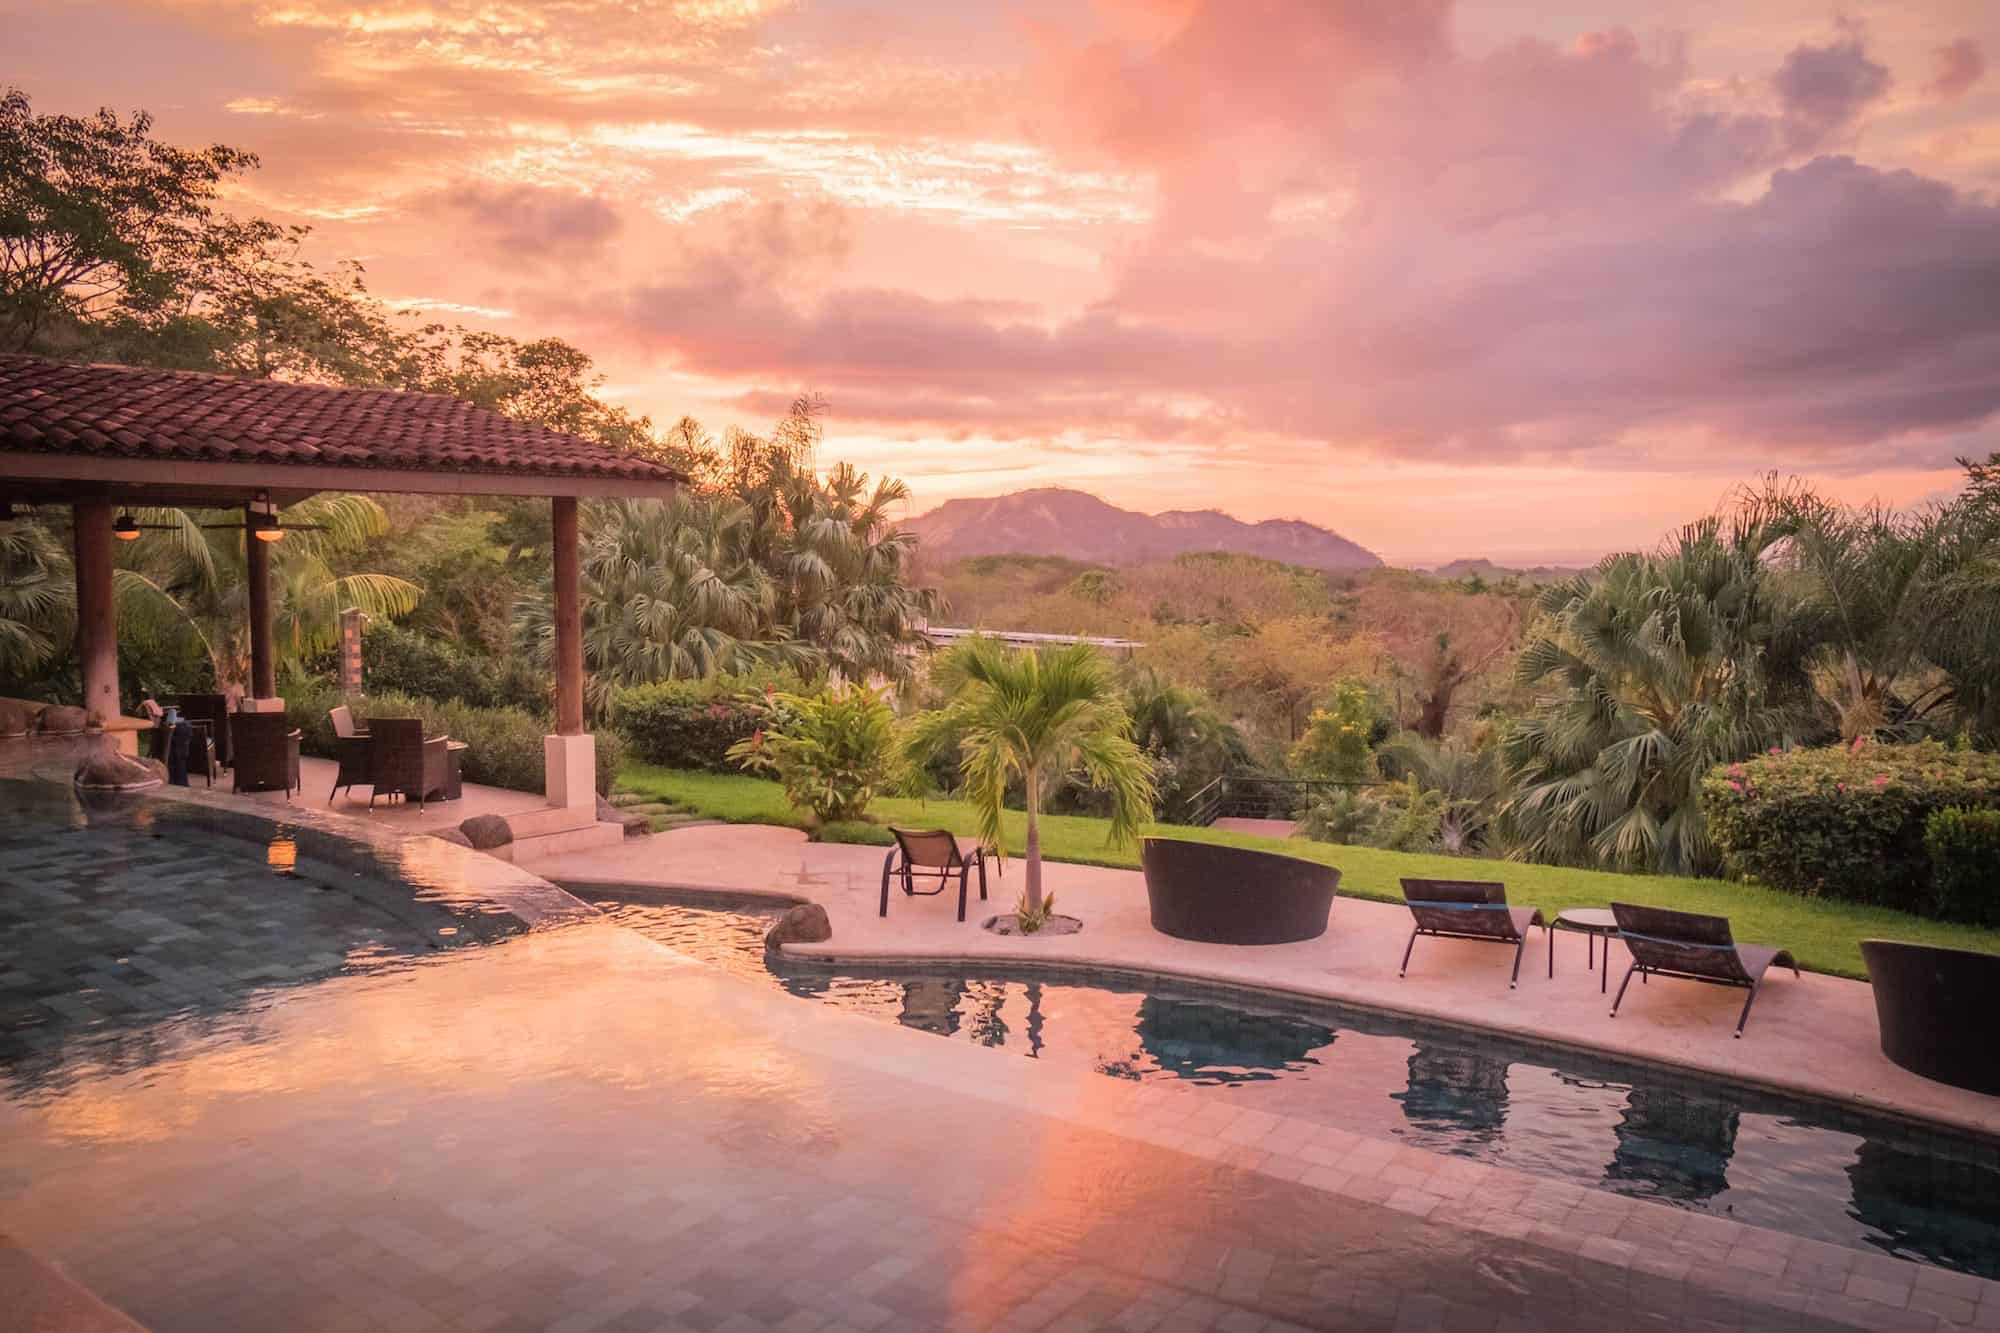 Travel In Costa Rica - Villa Buena Onda